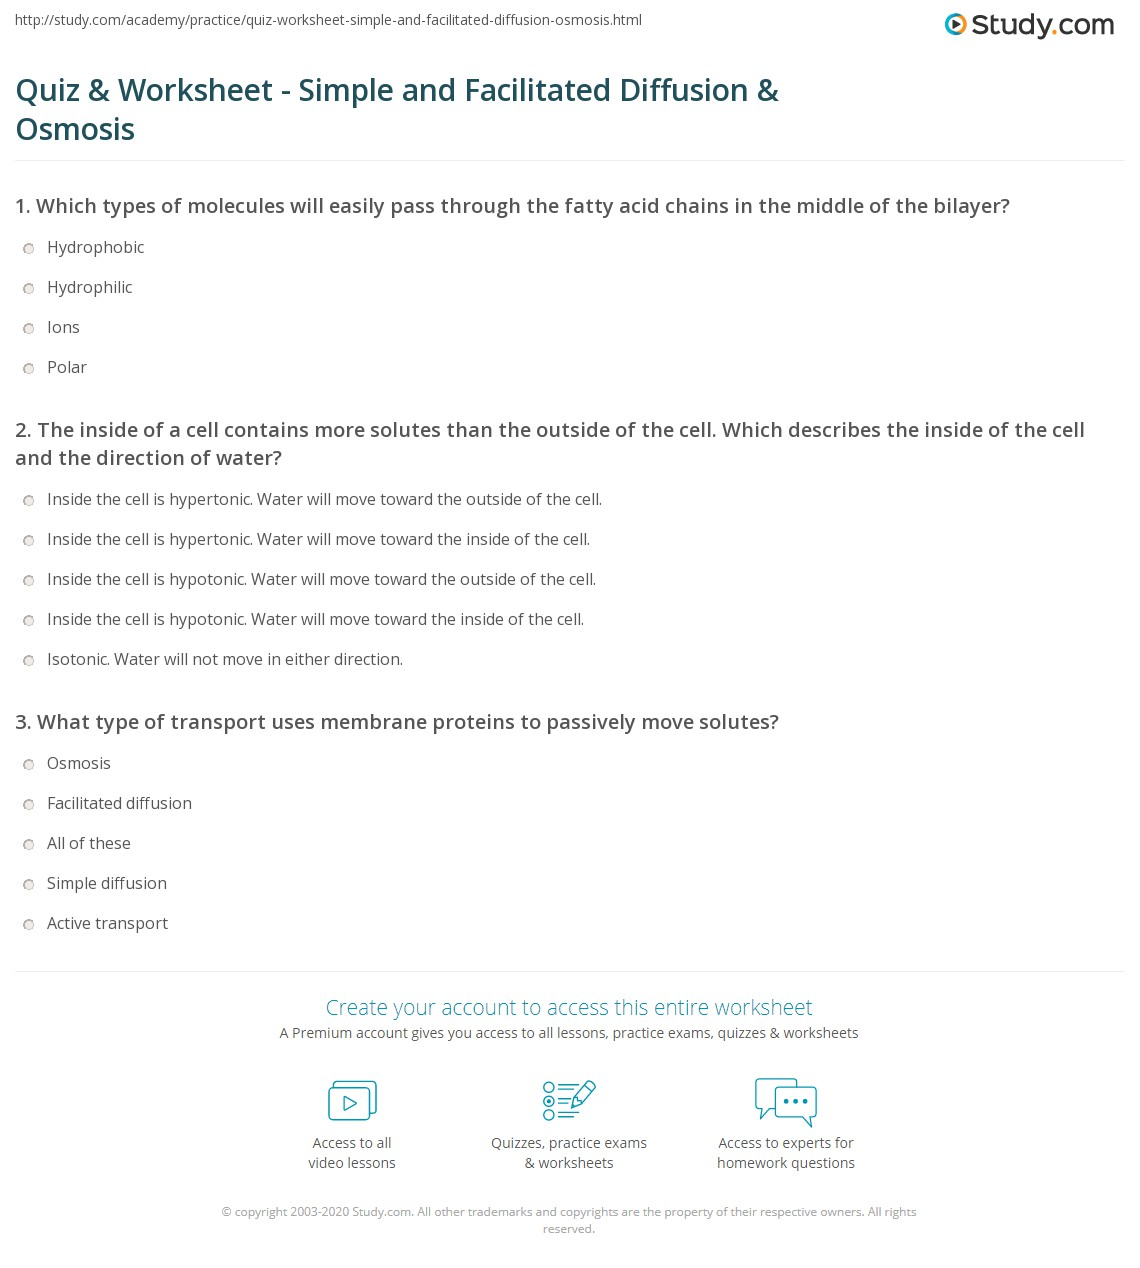 Quiz & Worksheet Simple and Facilitated Diffusion & Osmosis